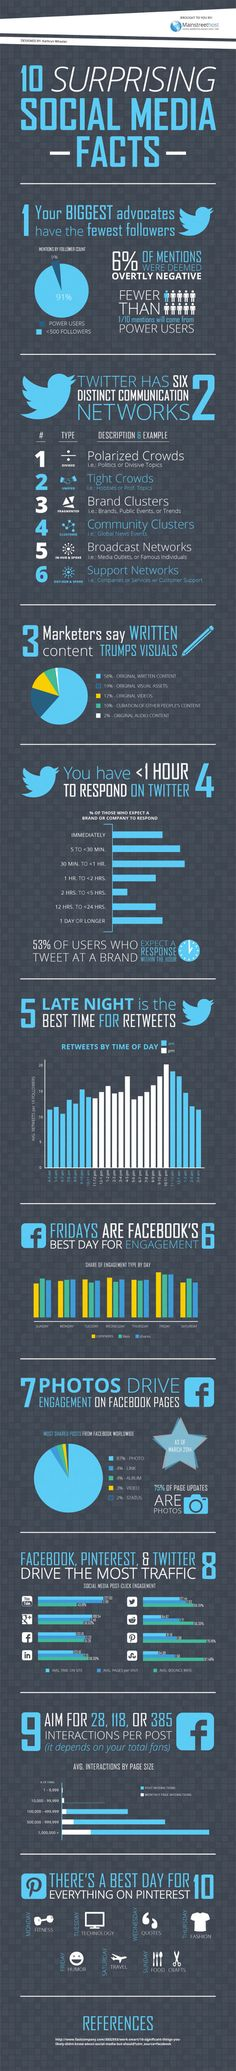 1 min read 10 Surprising Things You Should Know About #SocialMedia (#Infographic)